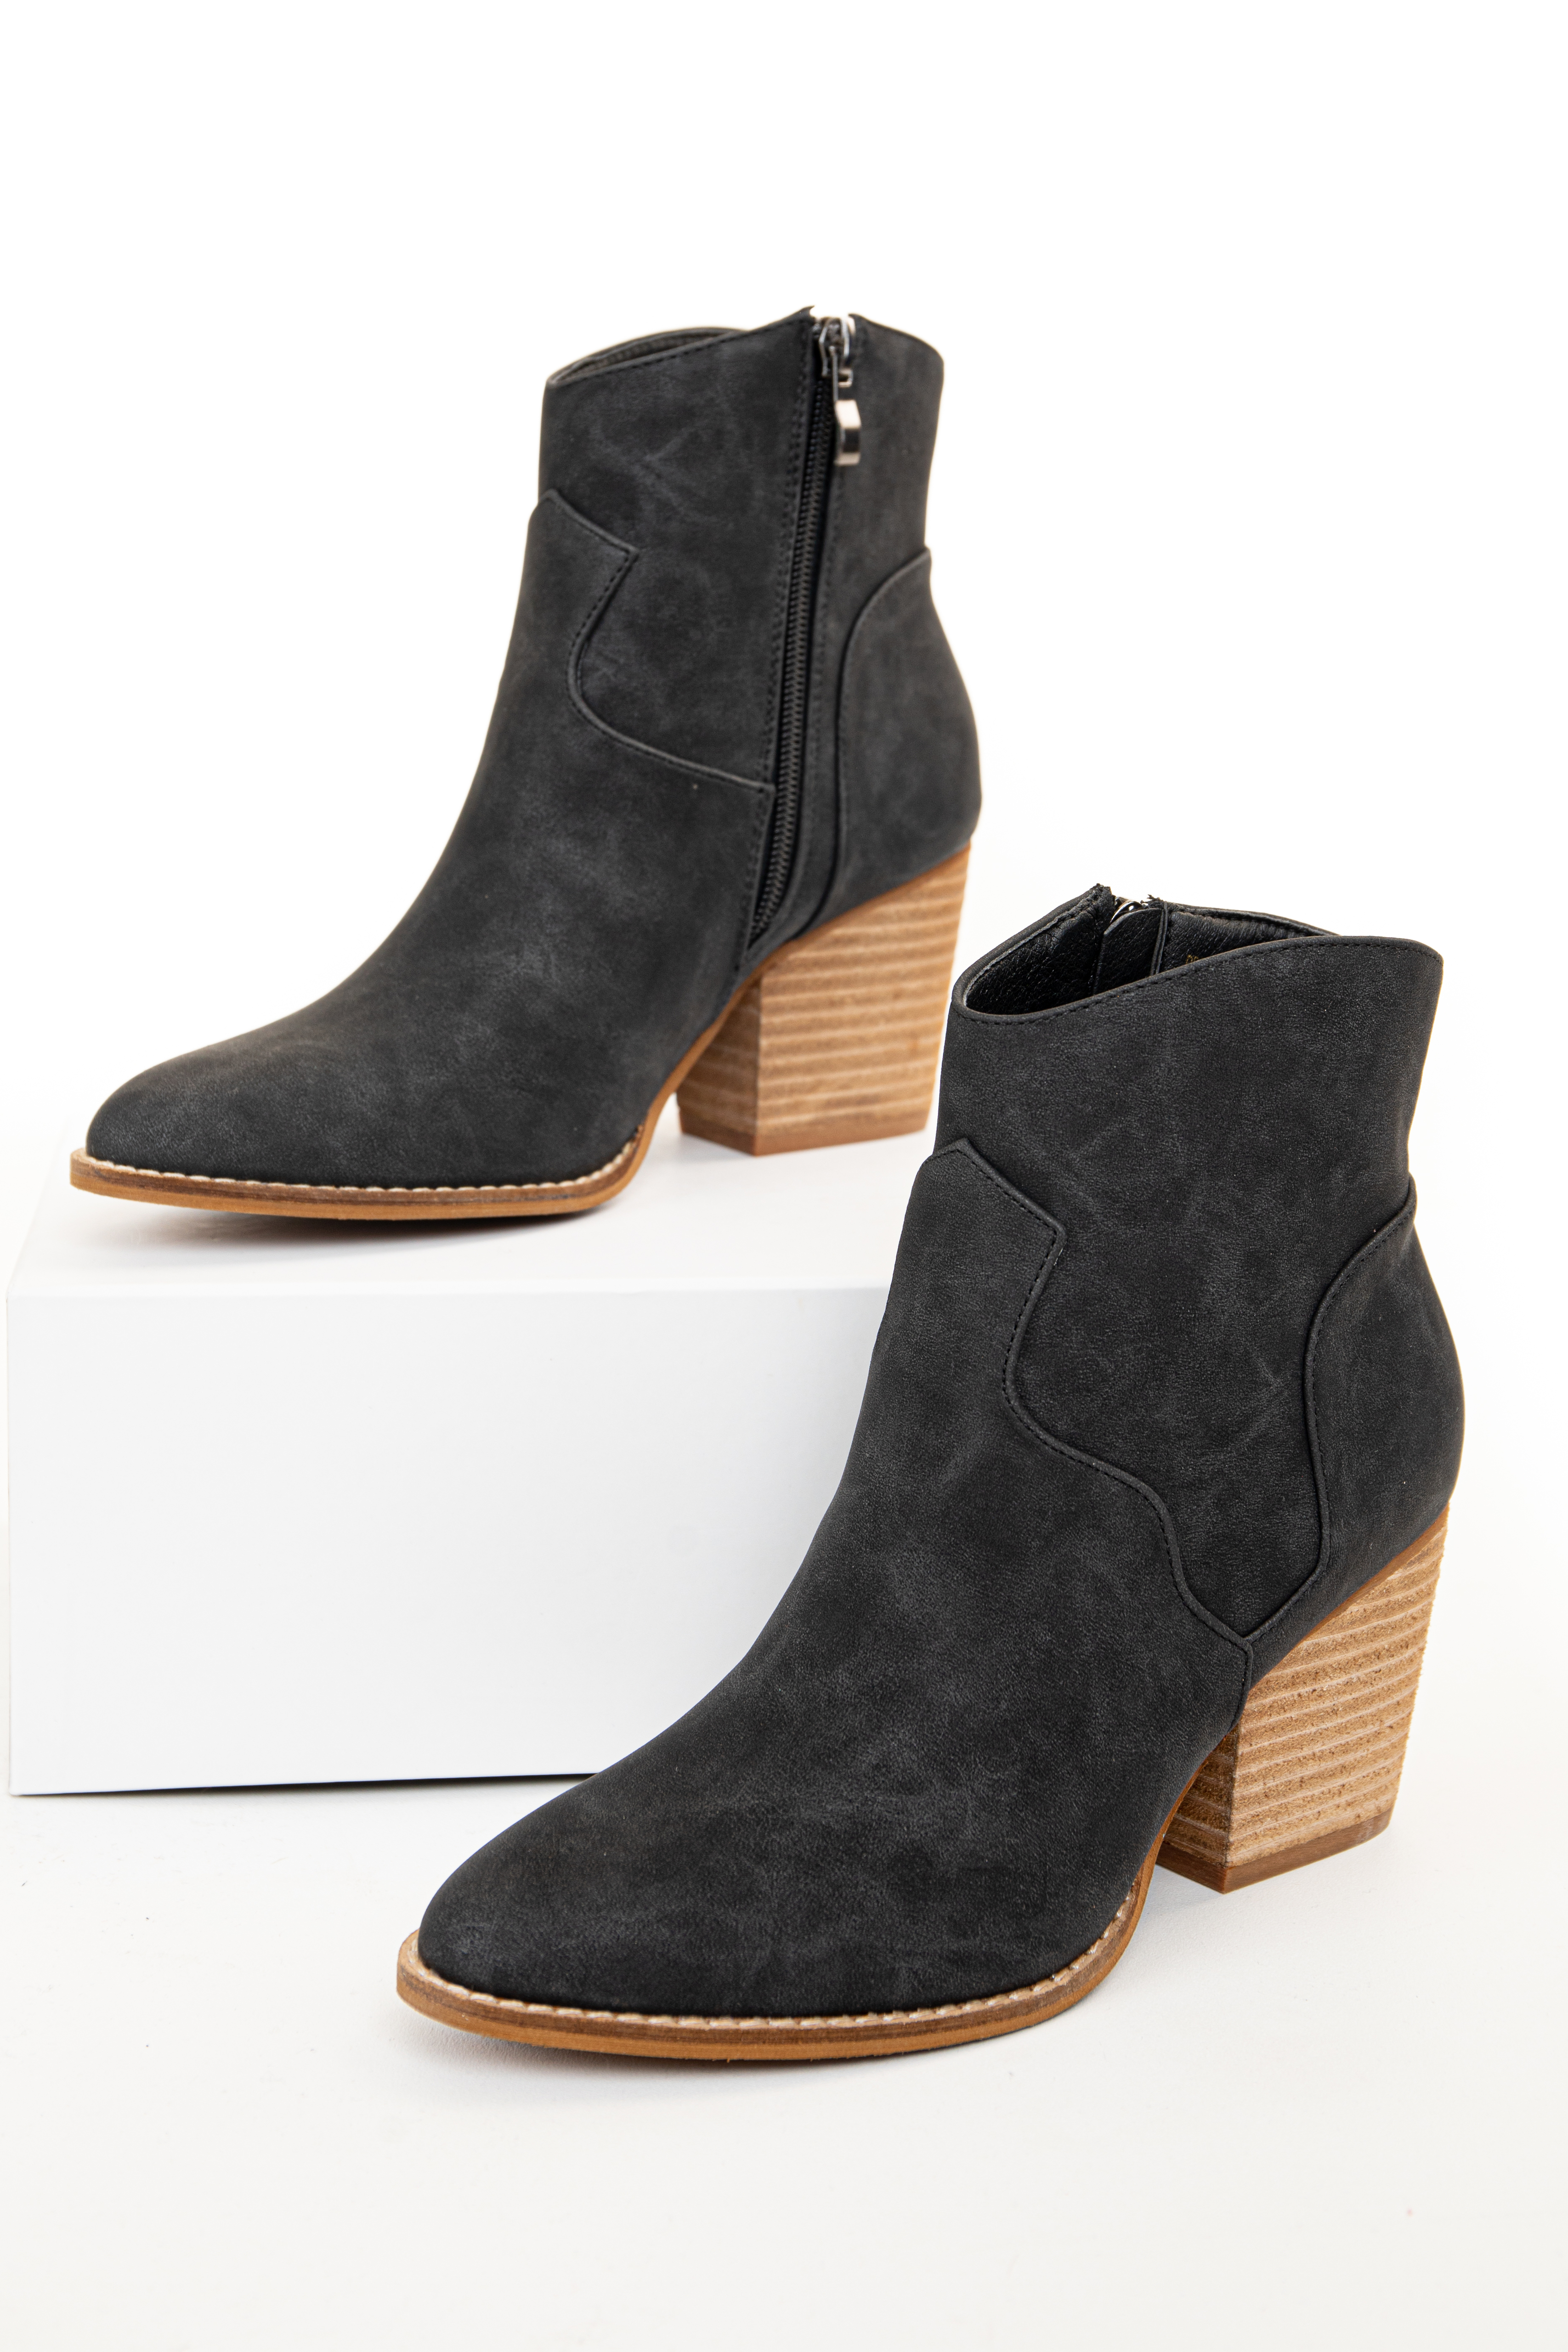 Charcoal Black Faux Suede High Heel Ankle Bootie